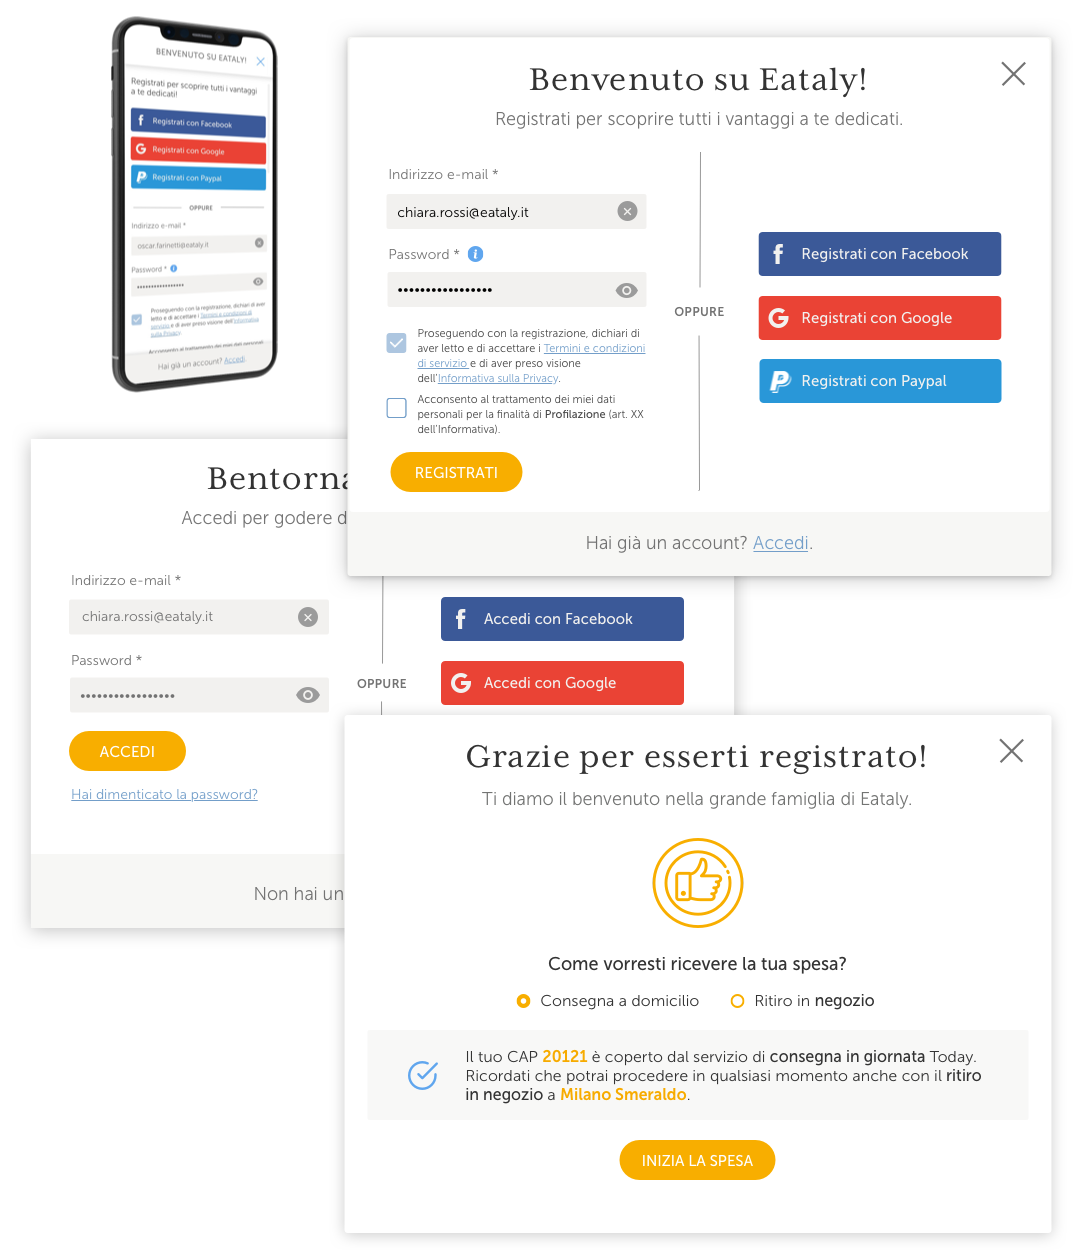 Registration and log-in screens